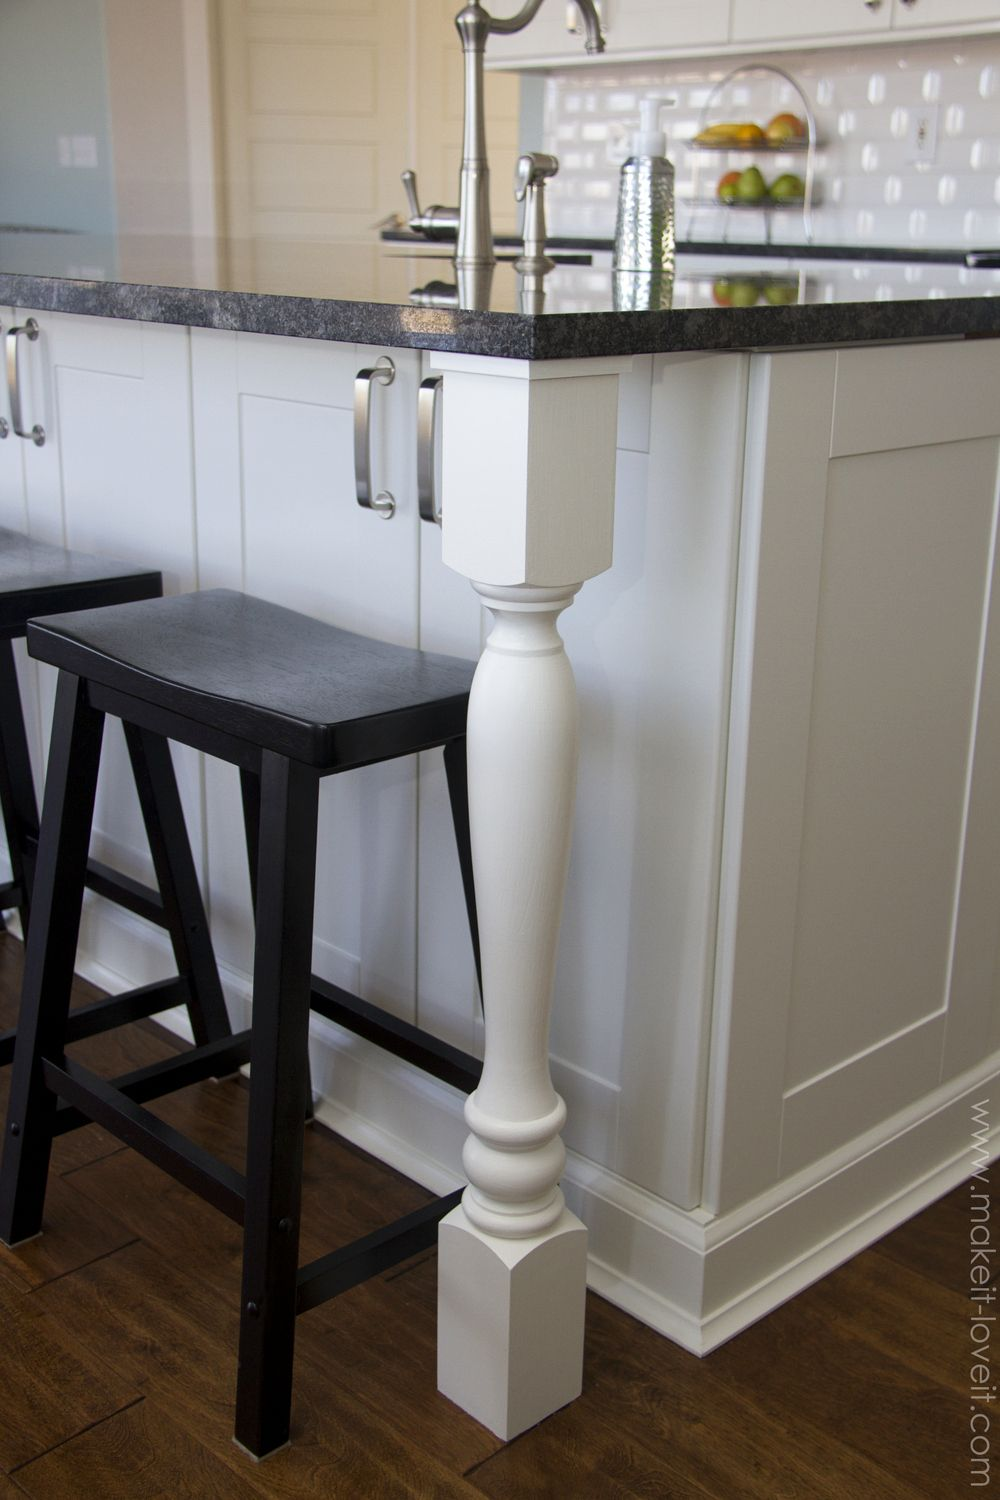 Home Improvement: Adding Column Supports to Counter Overhang (PLUS finished kitchen photos!)